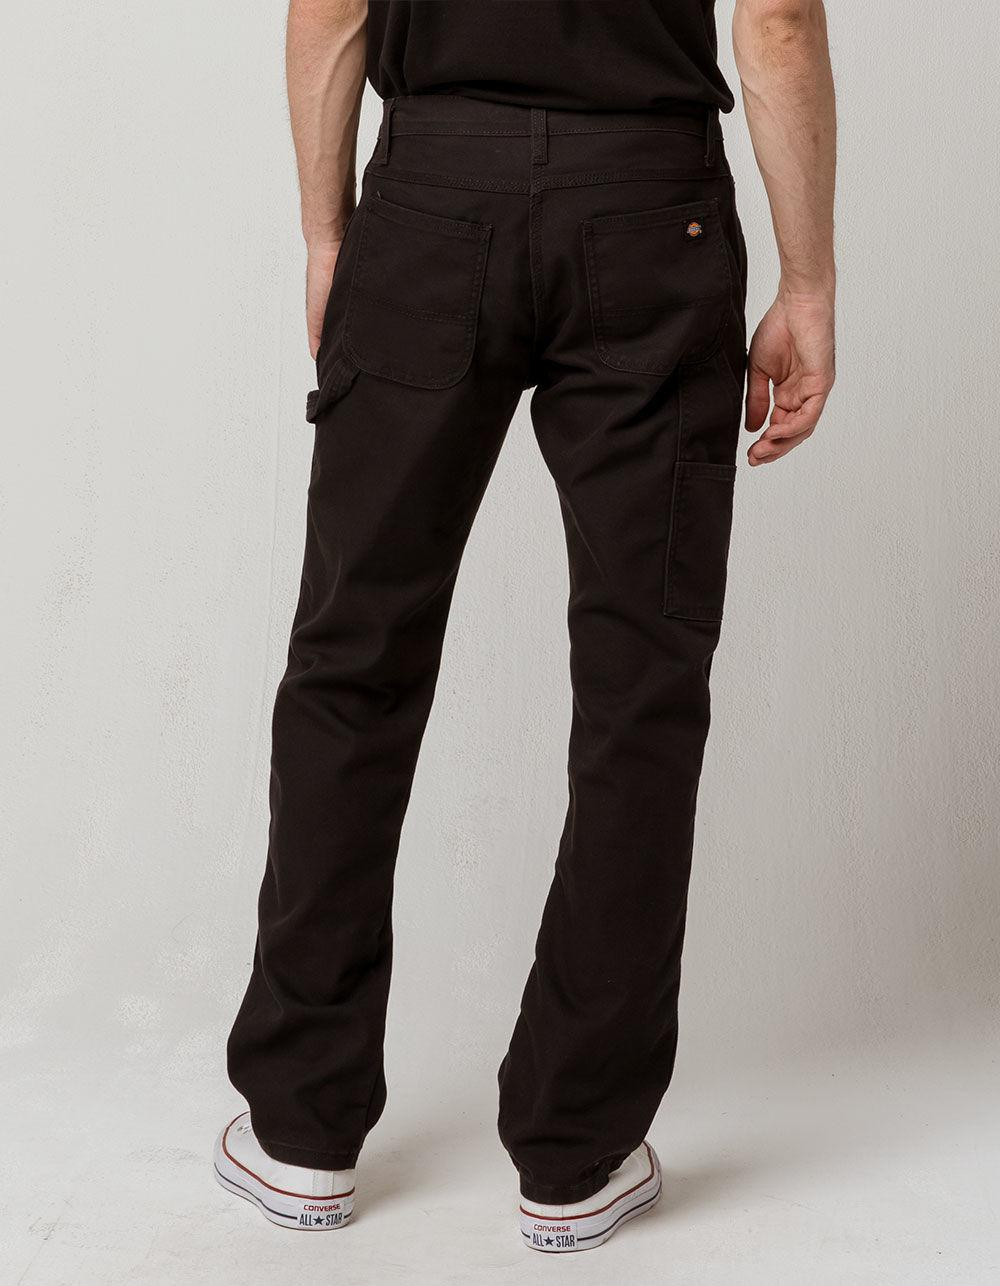 7136a11b Dickies Flex Regular Fit Straight Leg Tough Max Stonewashed Black ...